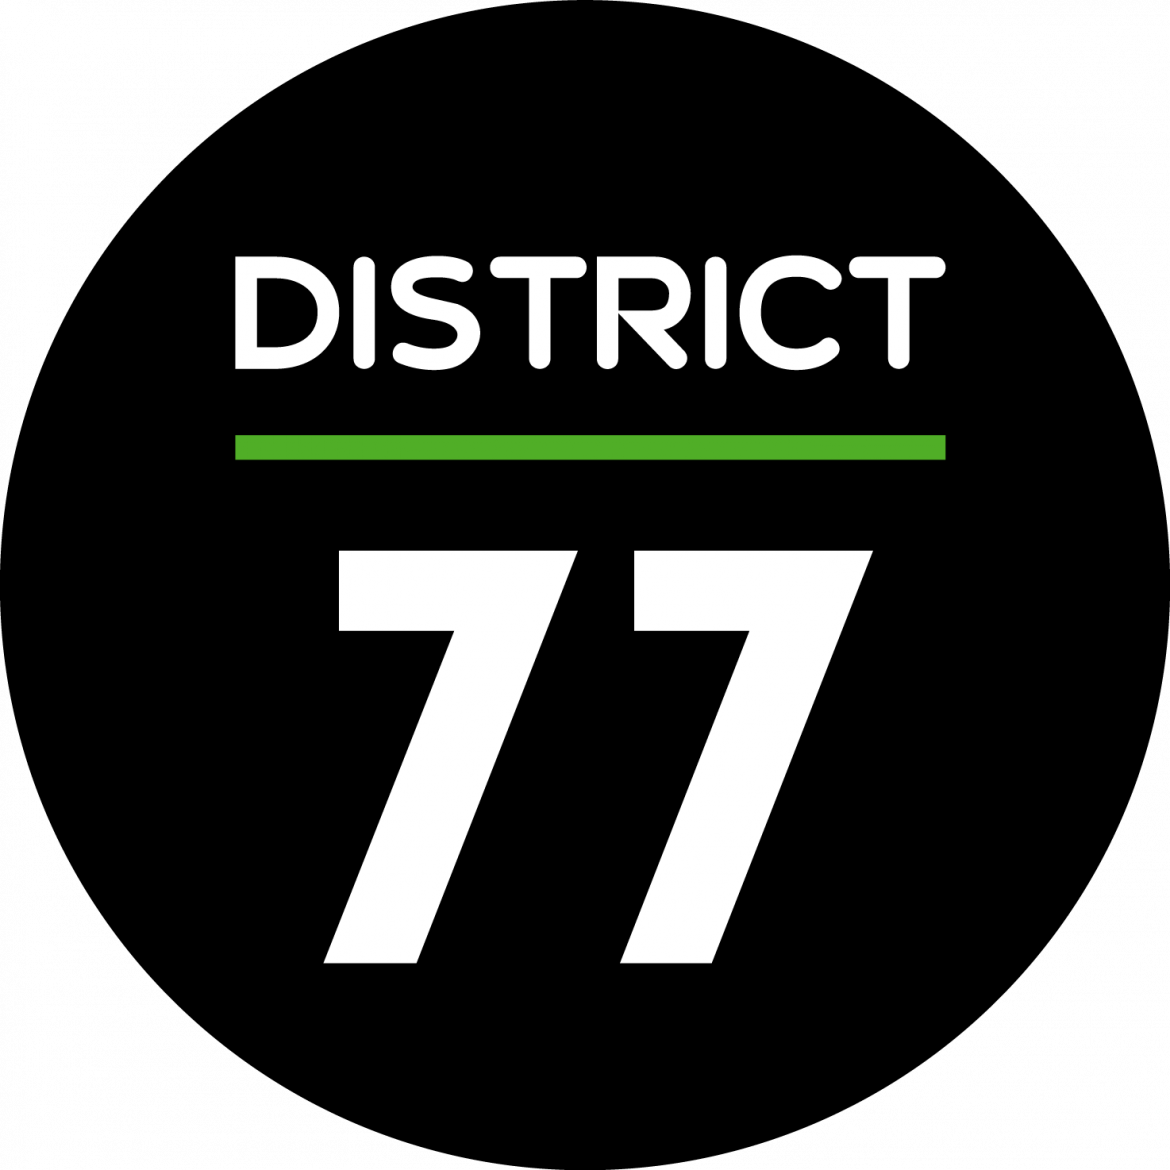 District-77.png